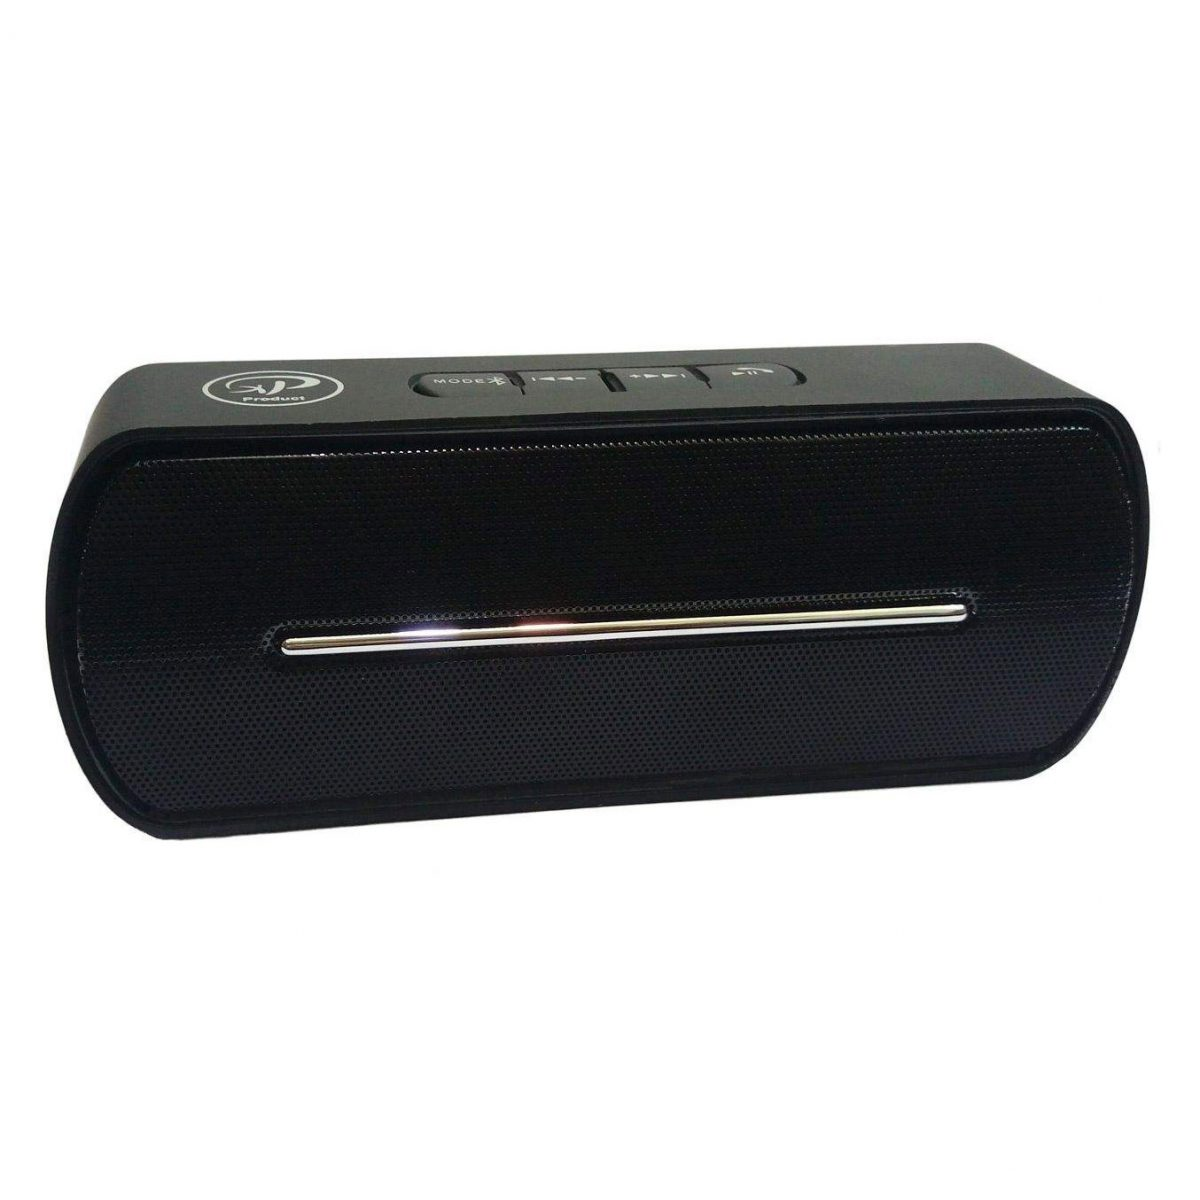 xp product xp-sp269a Bluetooth Speaker